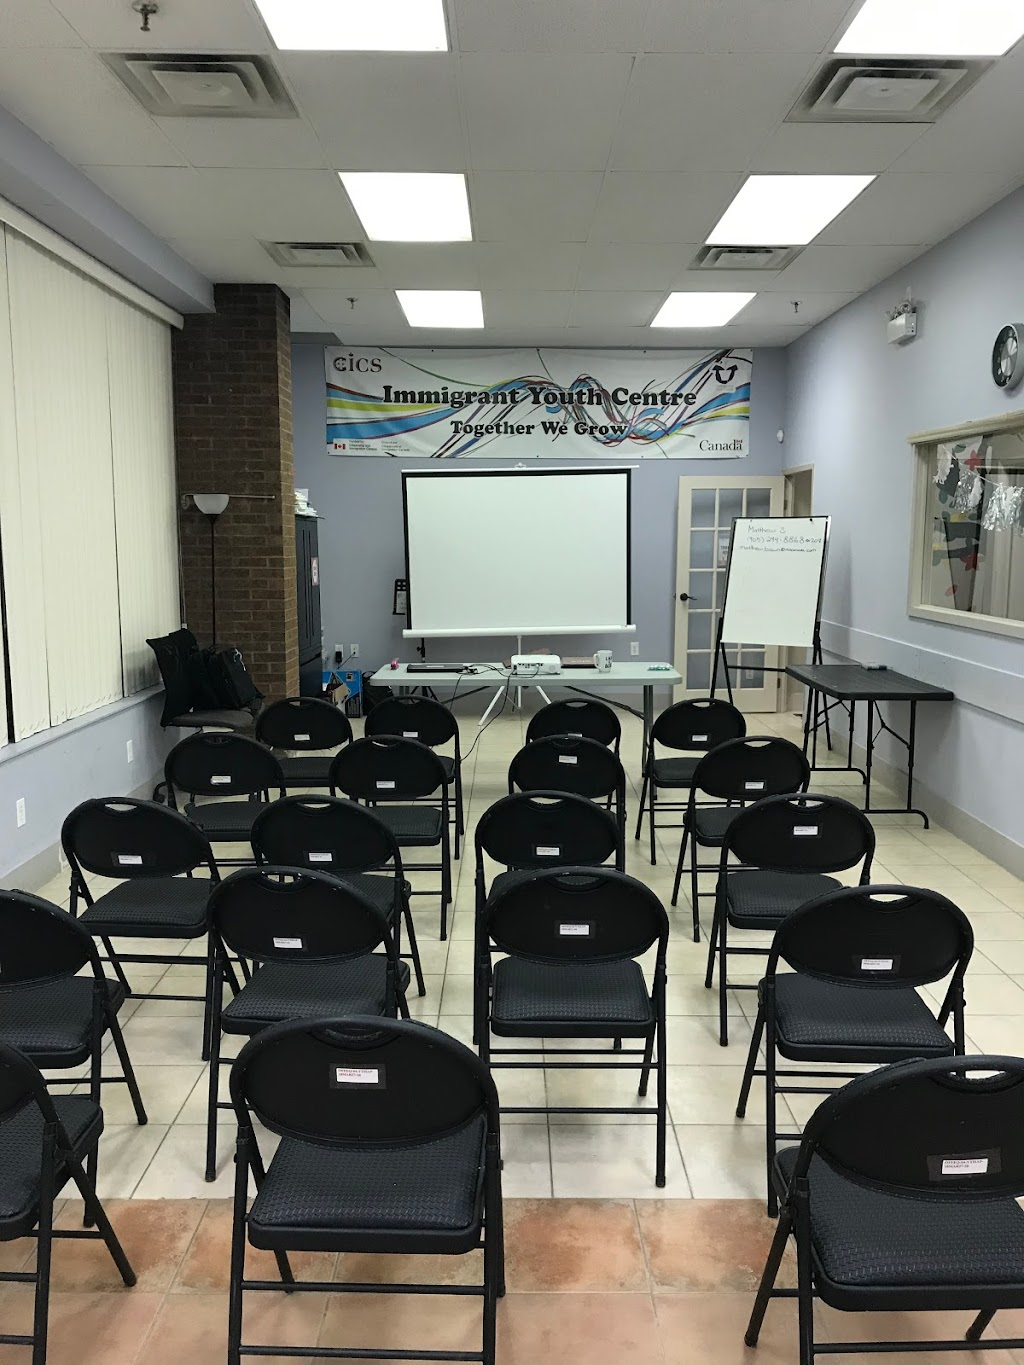 CICS Immigrant Youth Centre   point of interest   5284 Hwy 7 #2, Markham, ON L3P 1B9, Canada   9052948868 OR +1 905-294-8868